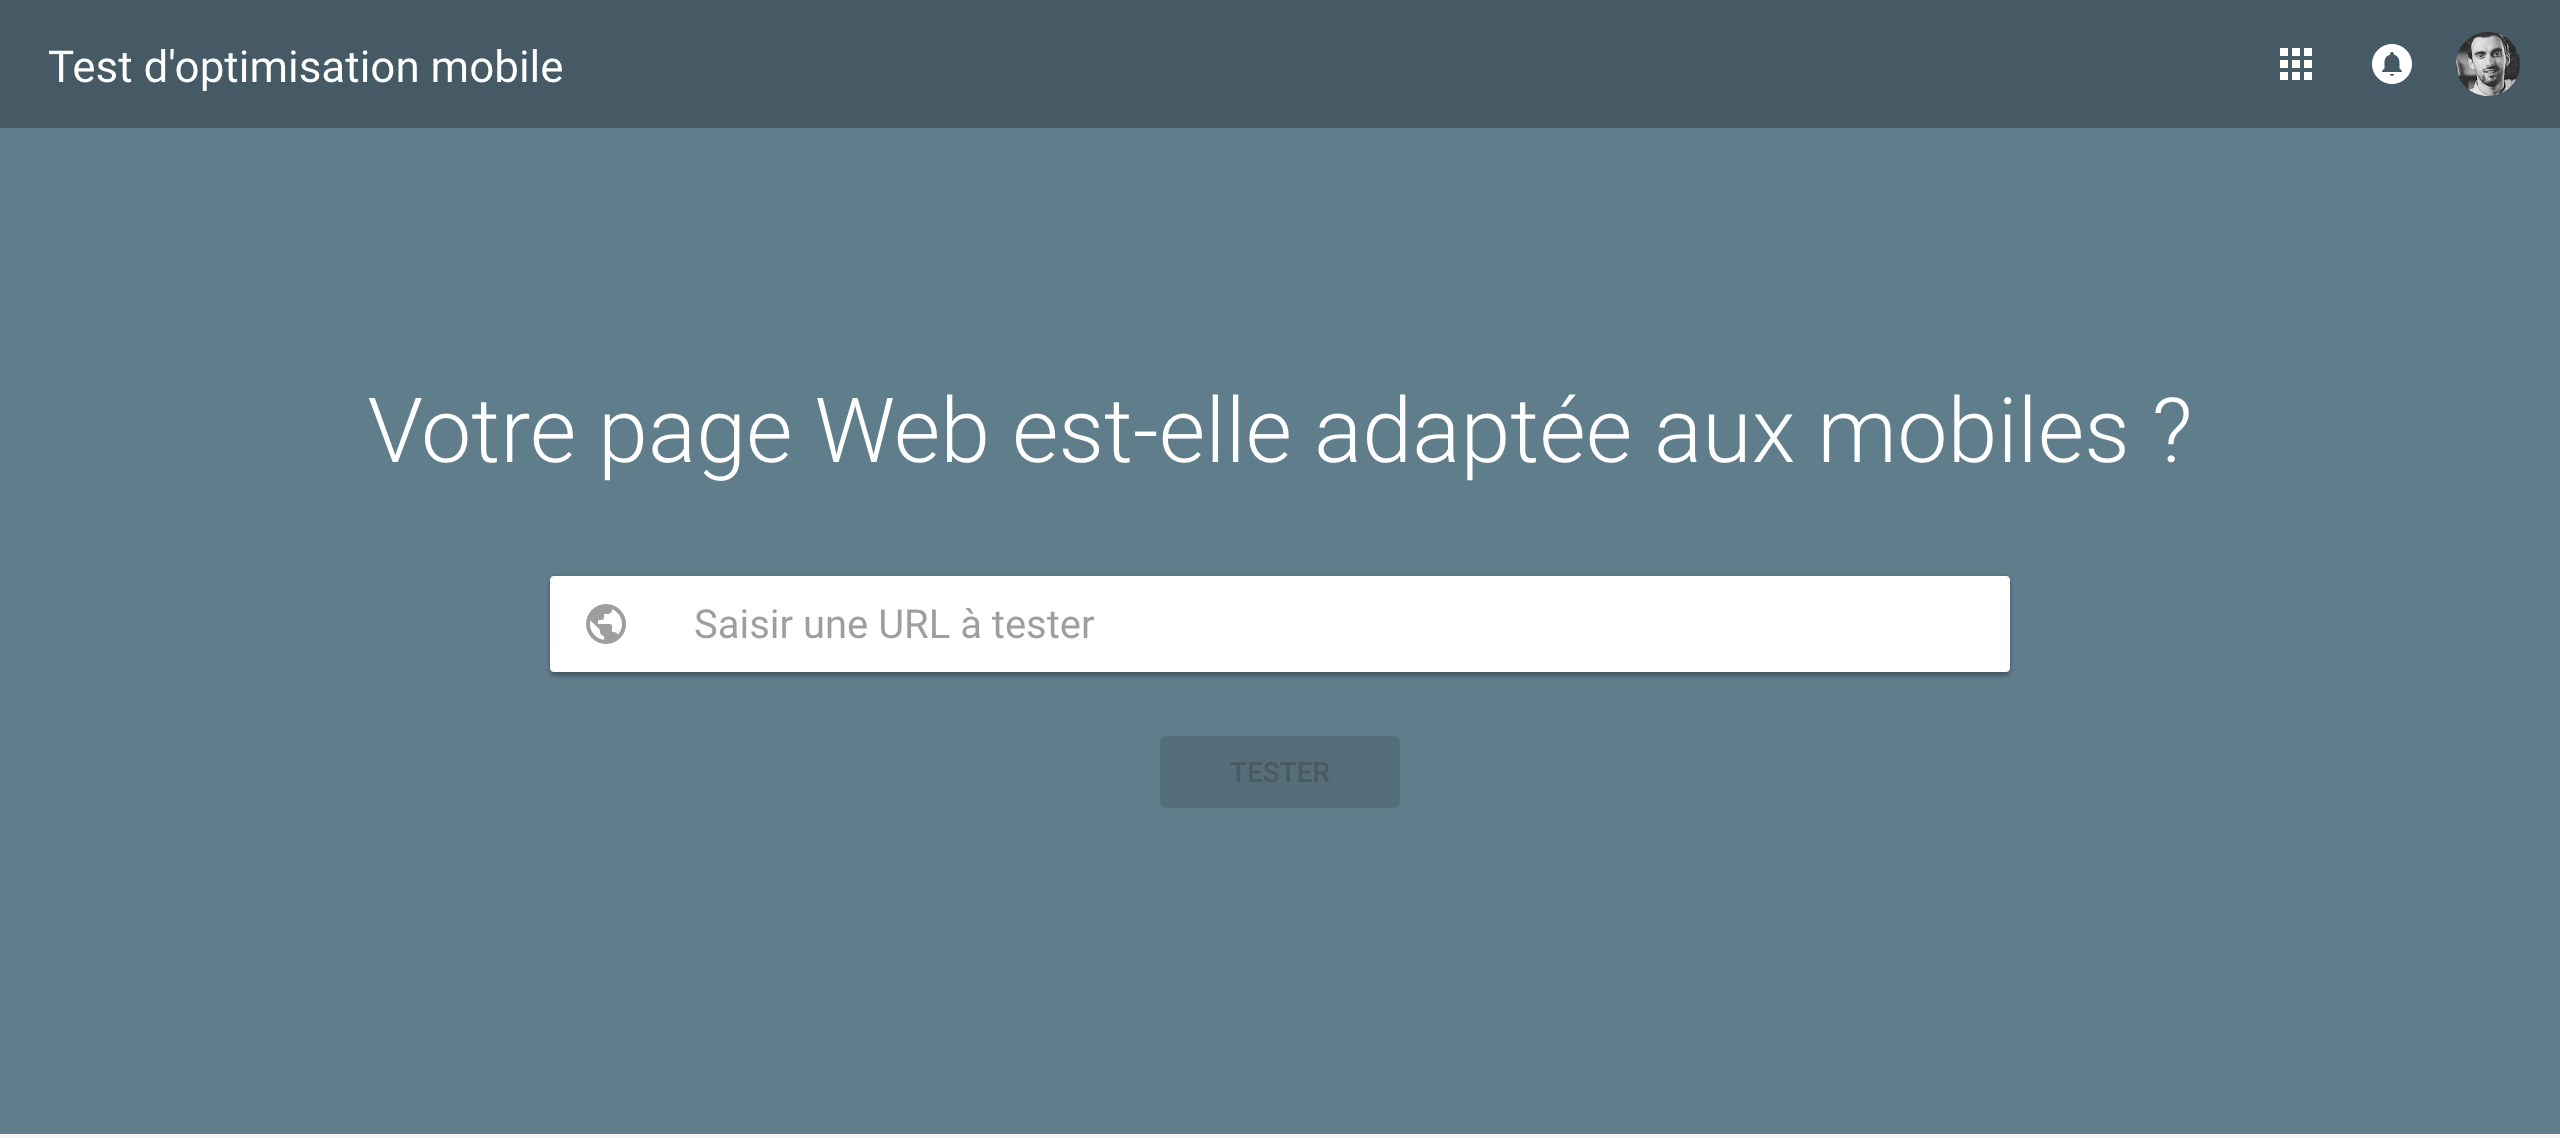 Test d'optimisation mobile de Google - site web adapté au mobile